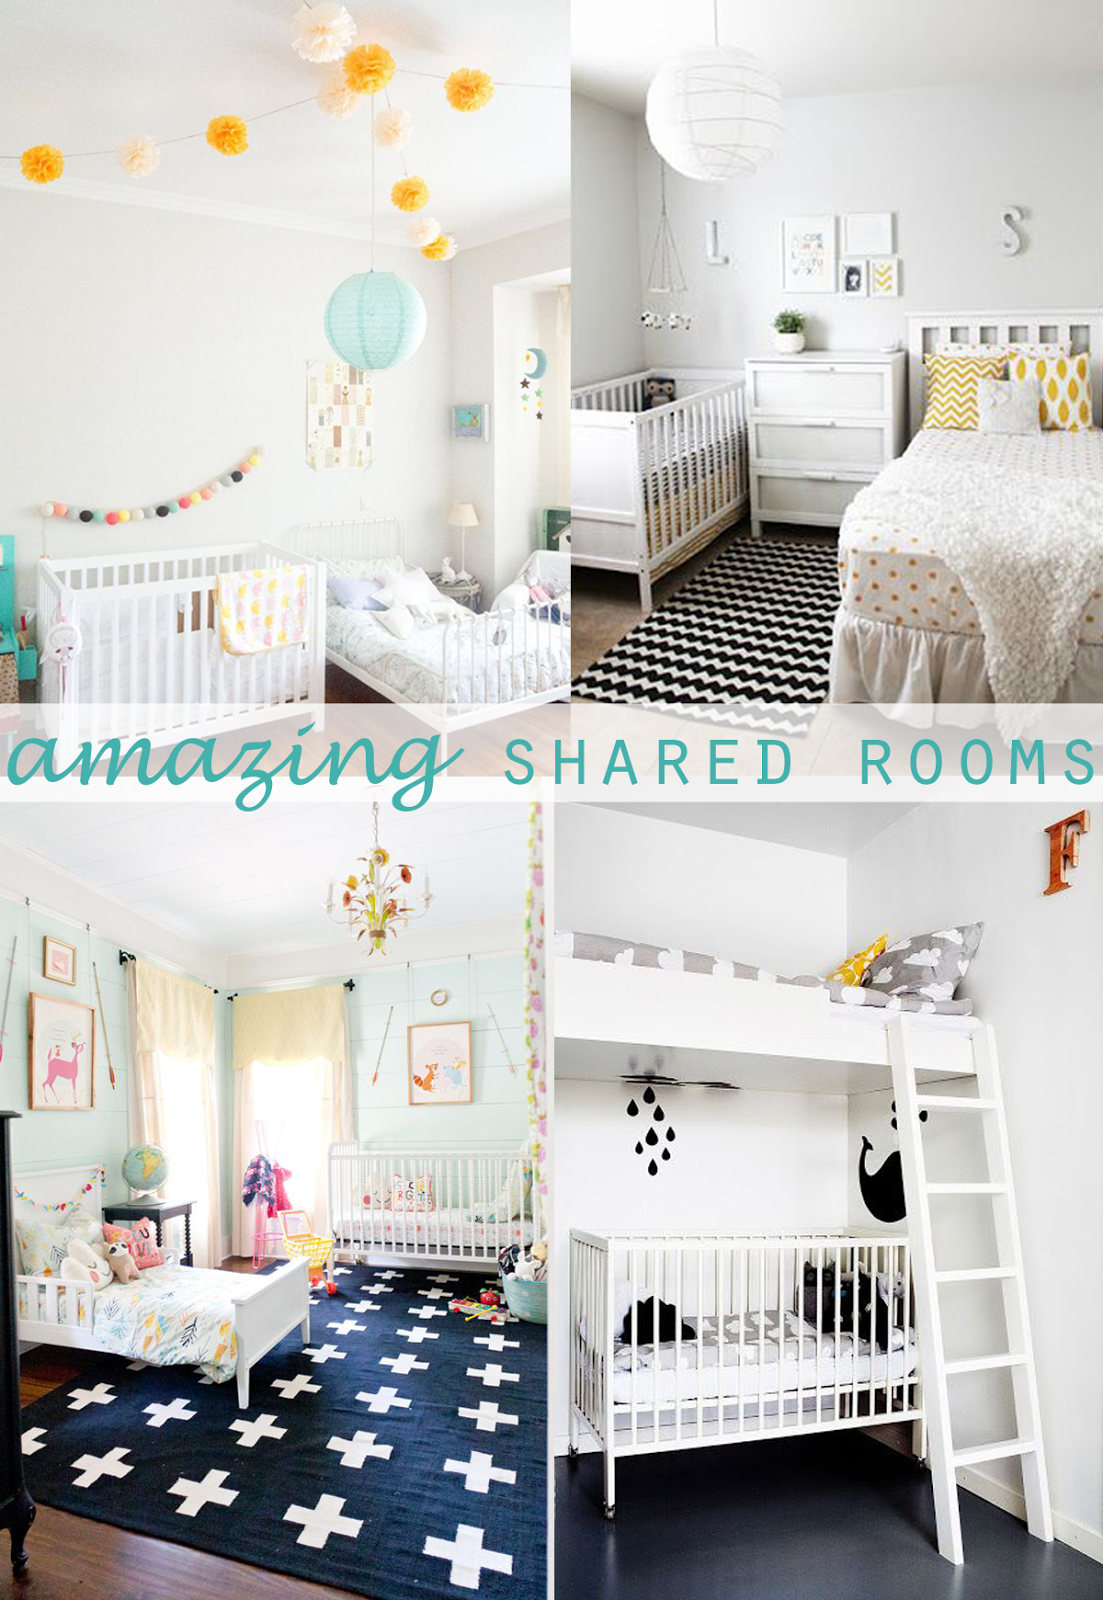 ideas about shared kids bedrooms on pinterest kid bedrooms shared